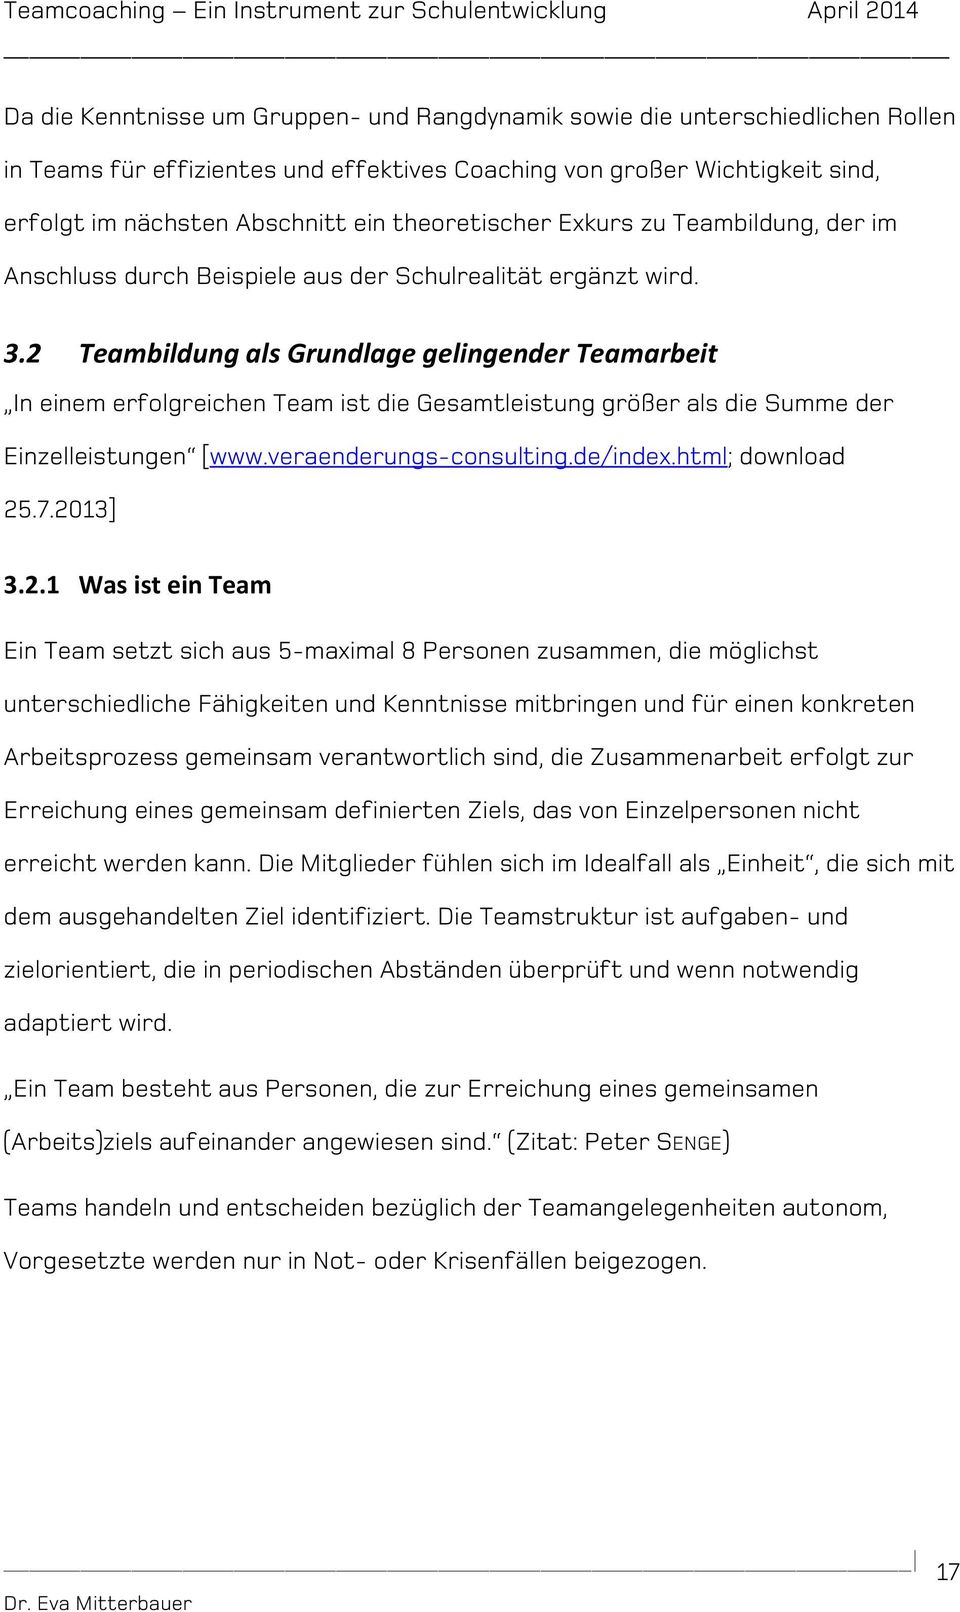 Niedlich Effektive Lebenslaufformate Bilder - Entry Level Resume ...